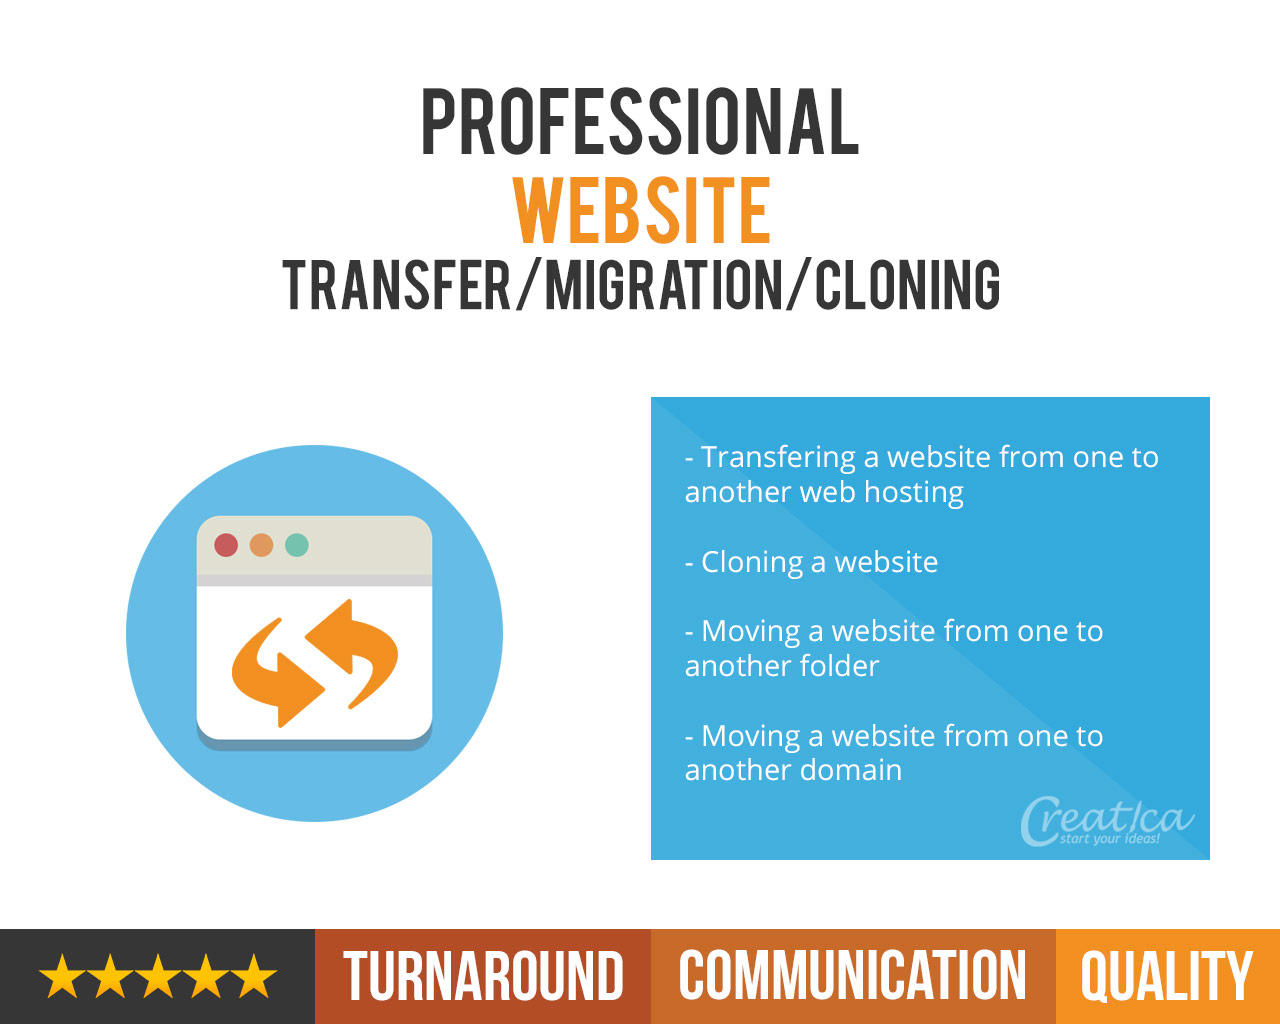 Wordpress Site Transfer/Migration/Cloning by CreaticaStudio - 109338